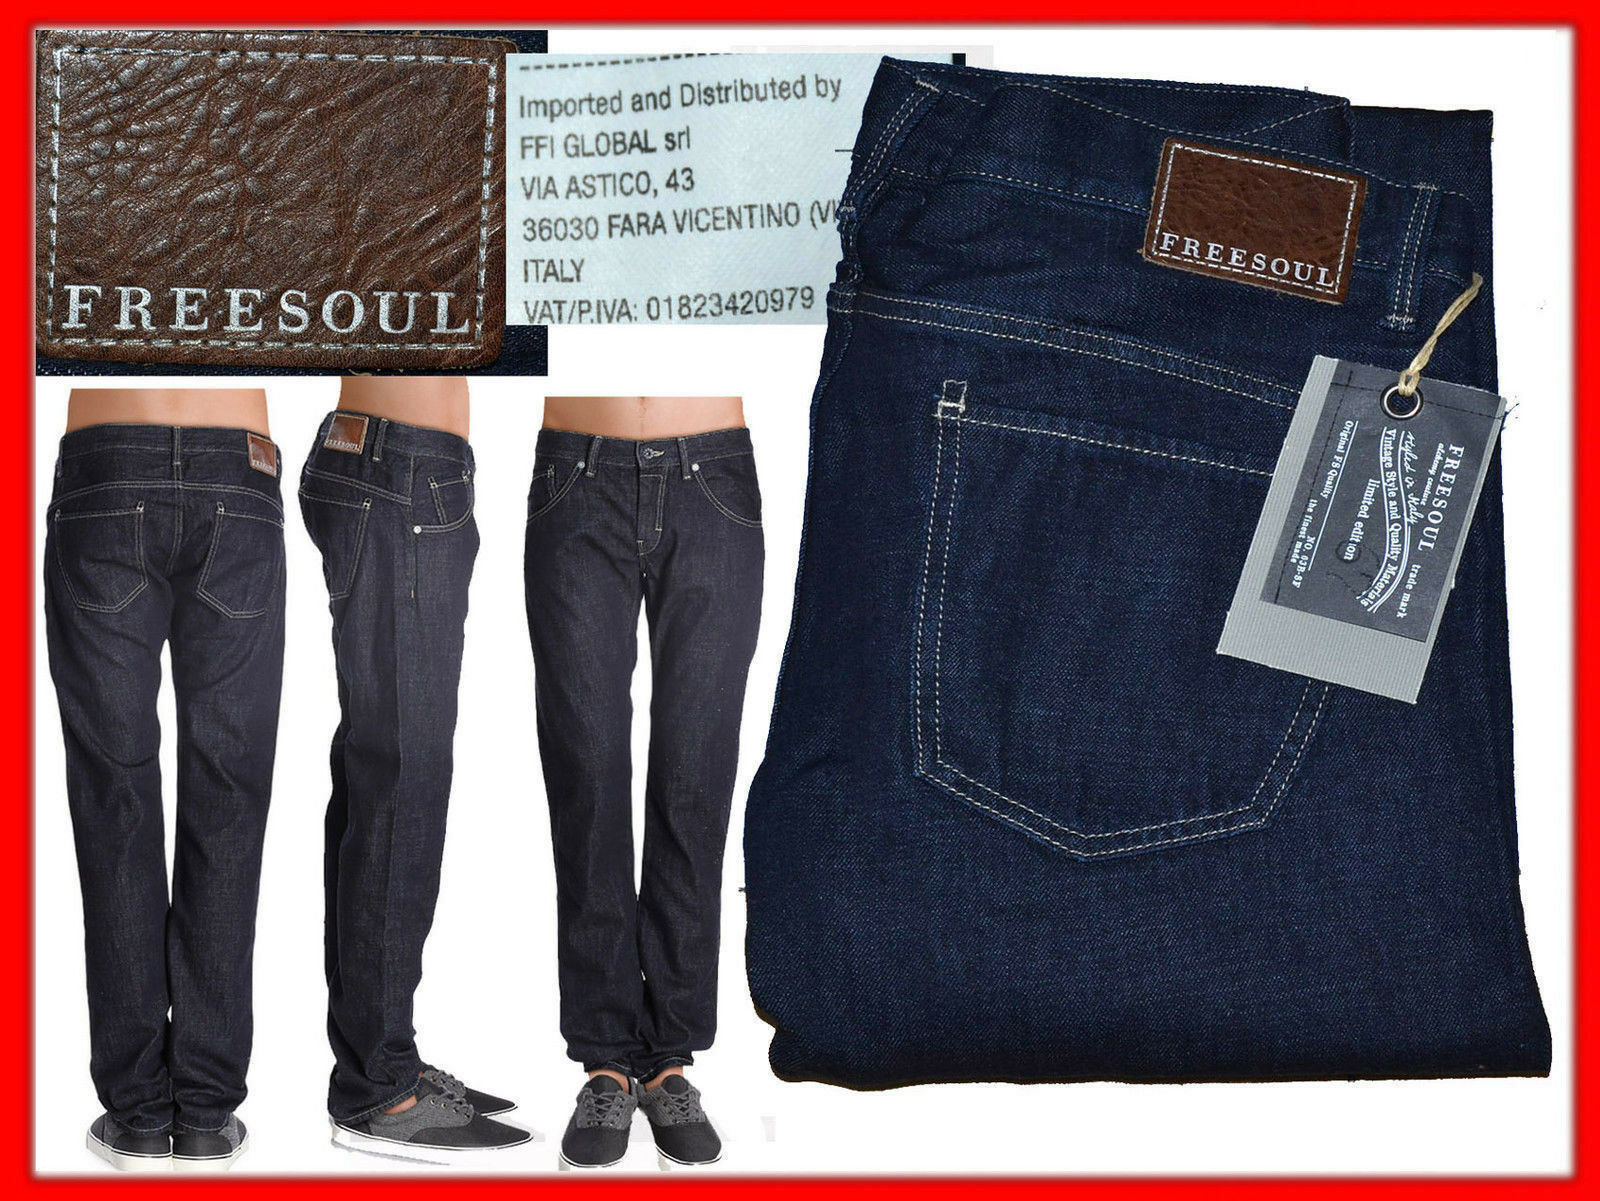 FREESOUL Jeans Per men 32 o 34 US Fino - 80 % FR01 N2G